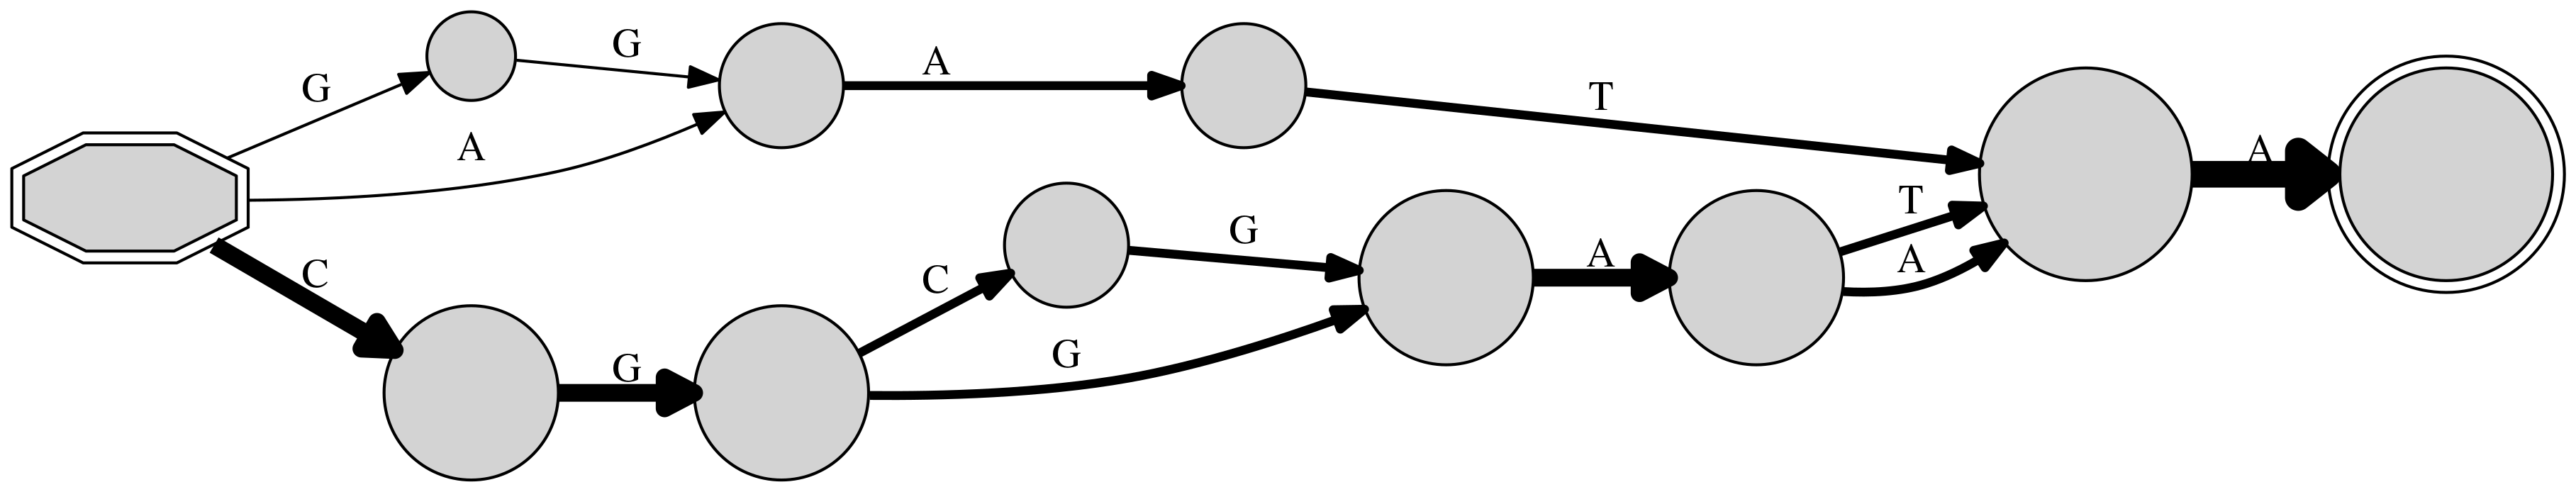 DNA example